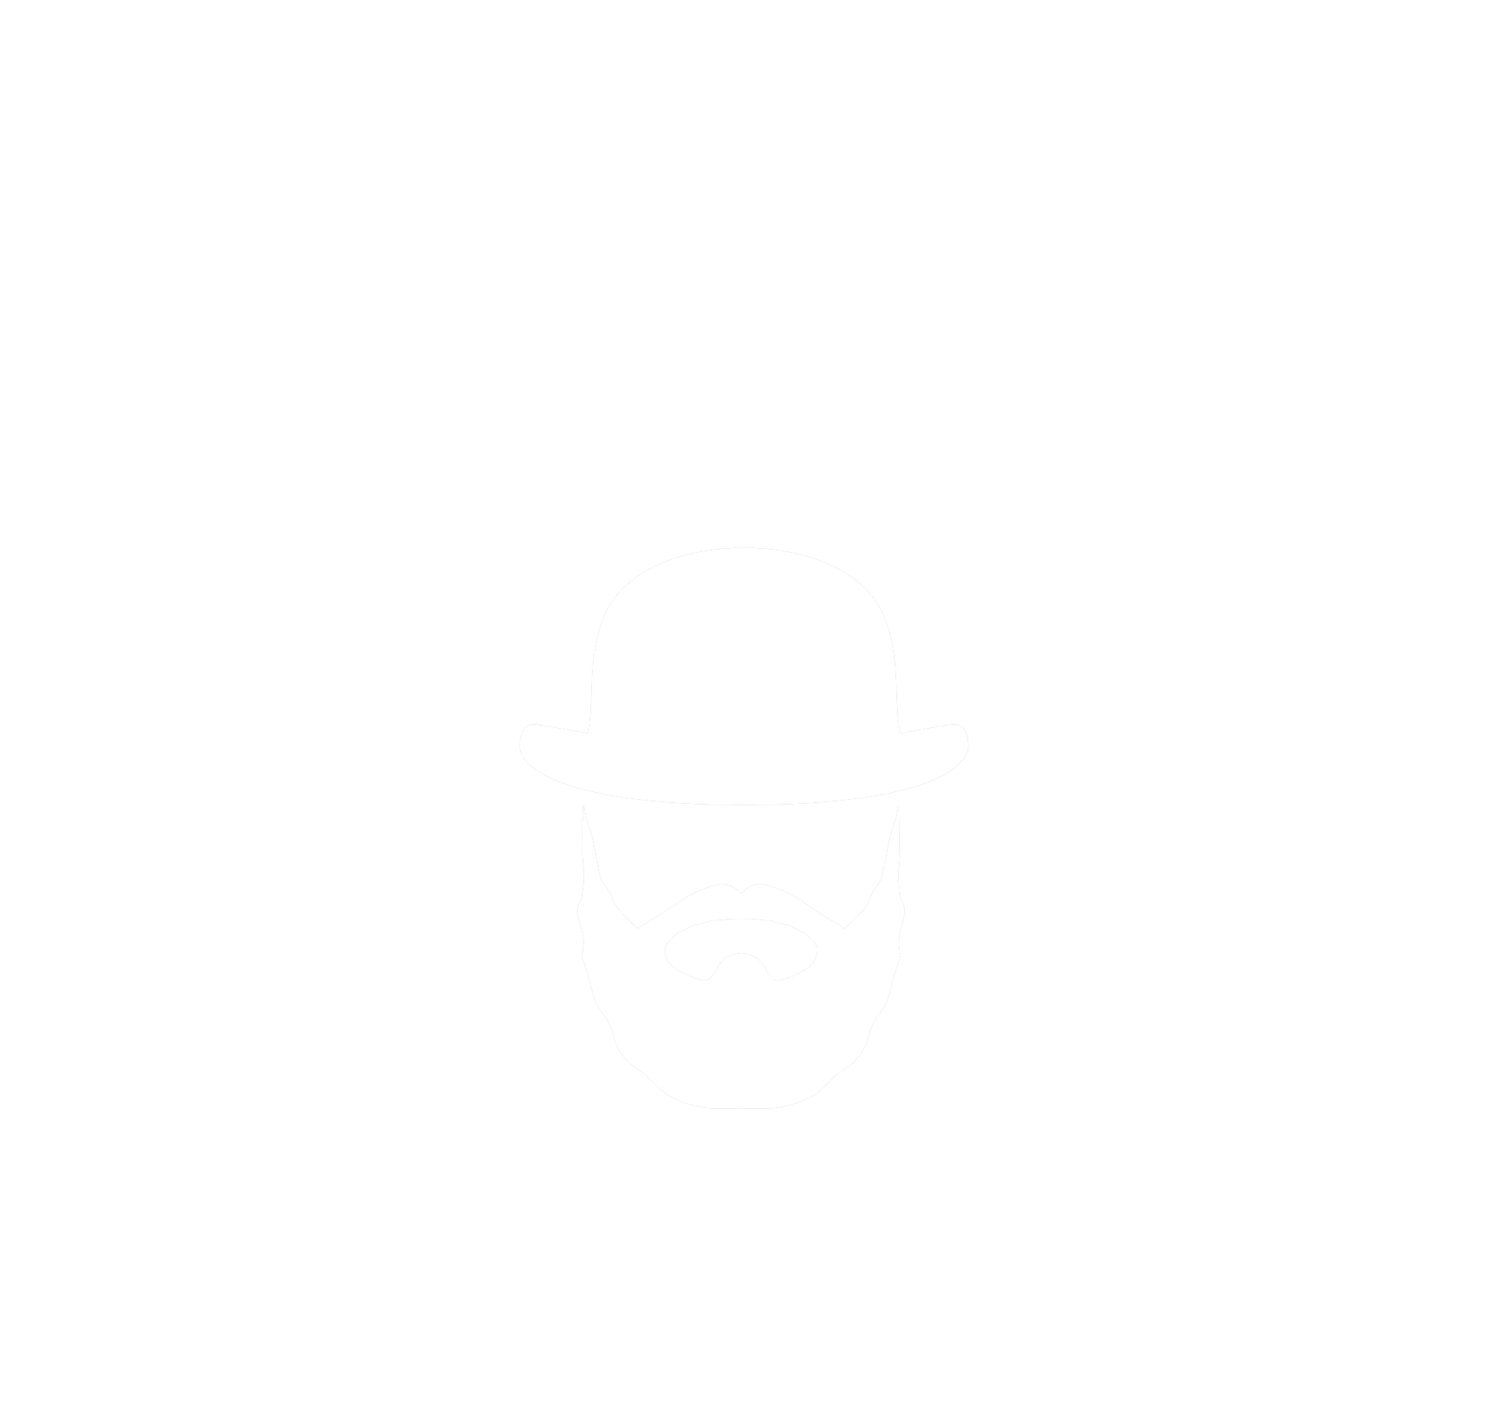 the gentleman bard